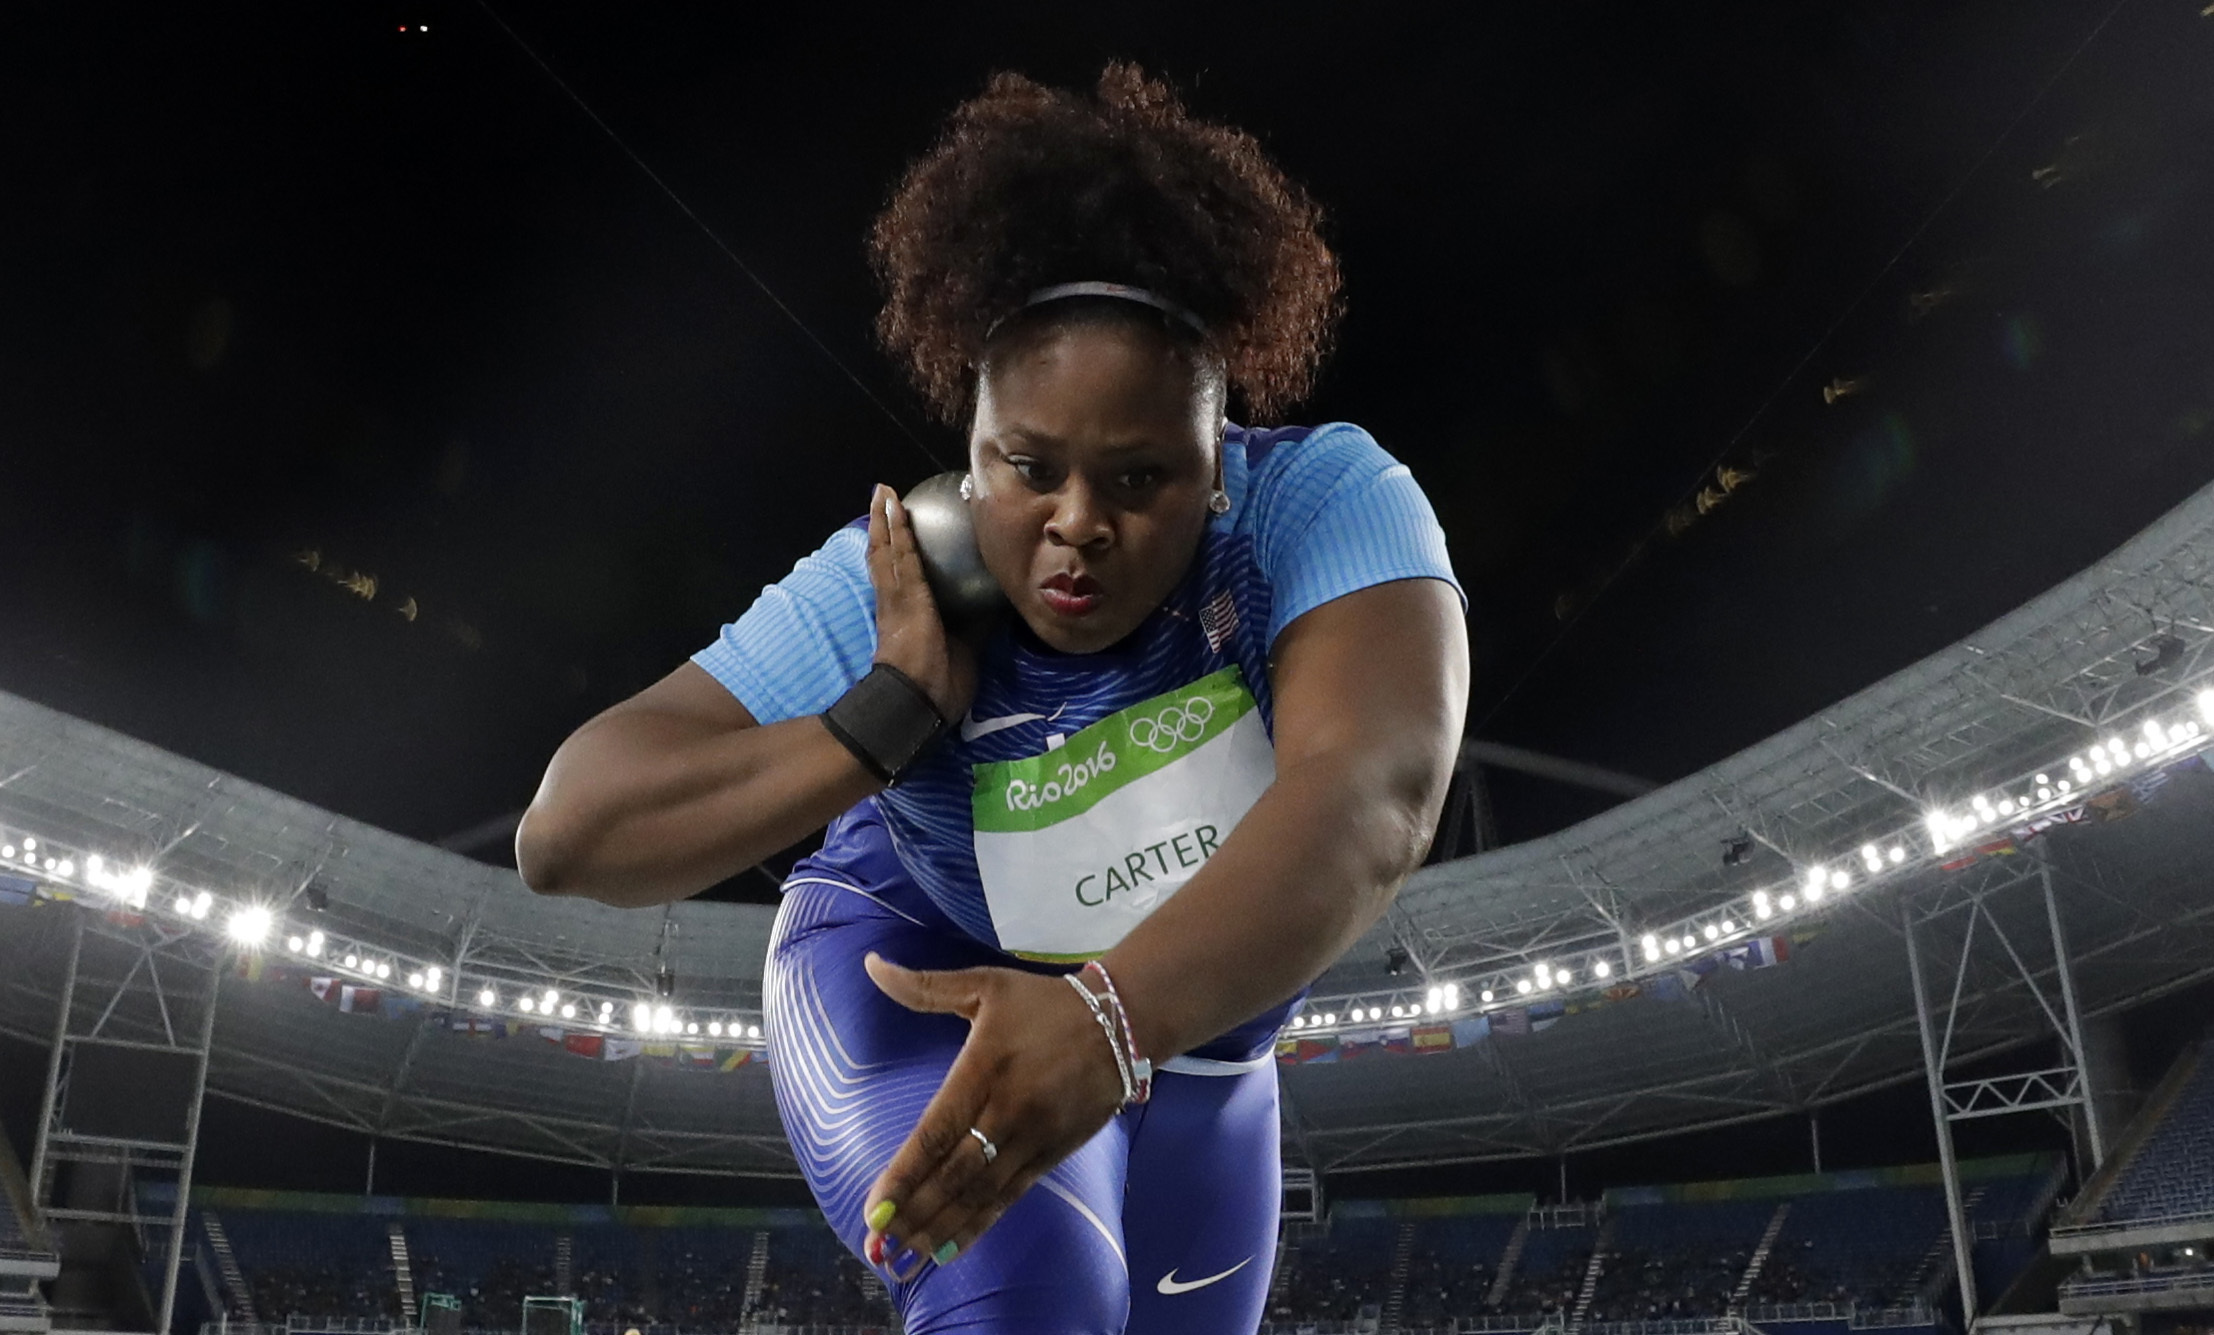 Olympic shot put women